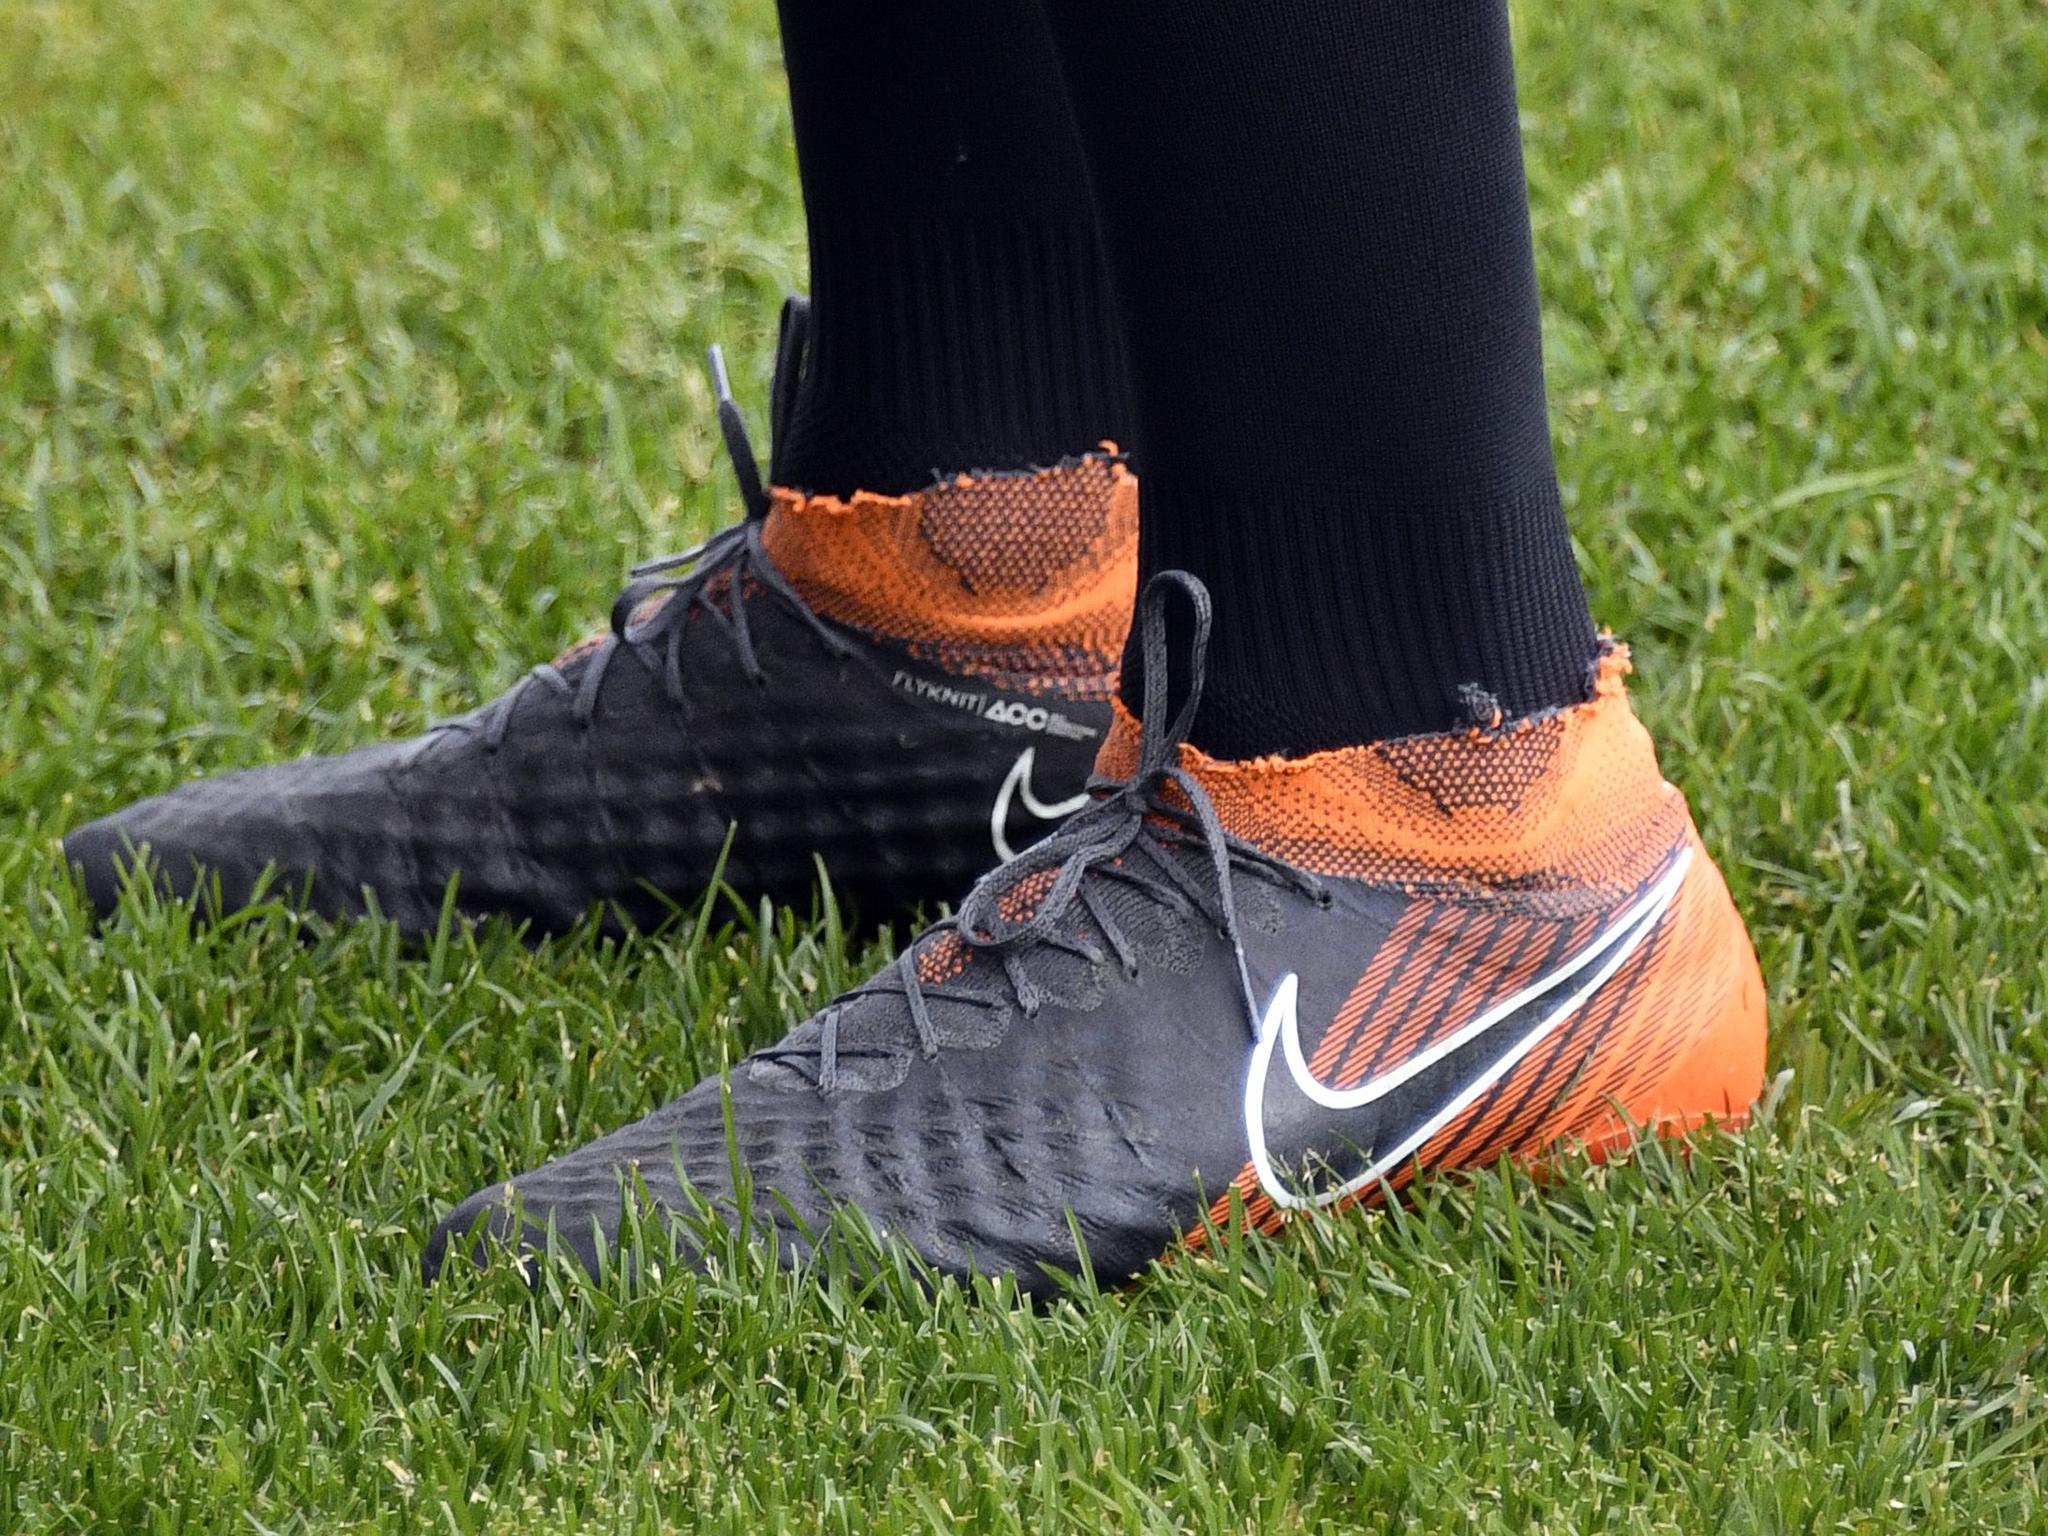 b01bb8702 World Cup 2018  Nike withdraws supply of football boots to Iran national  team due to new US sanctions